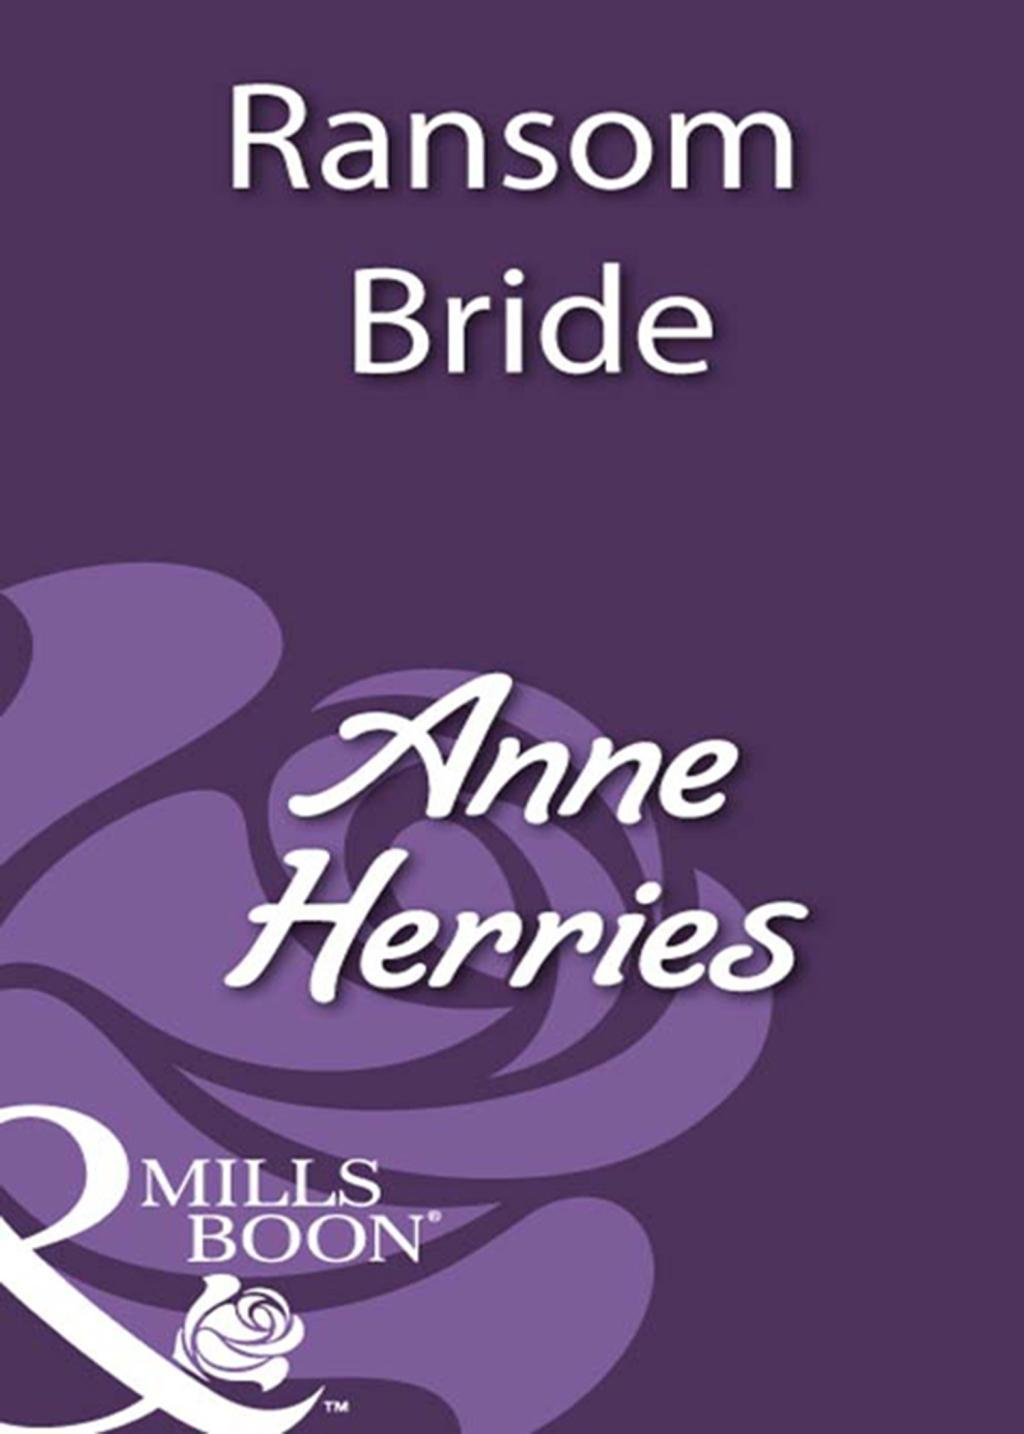 Ransom Bride (Mills & Boon Historical)